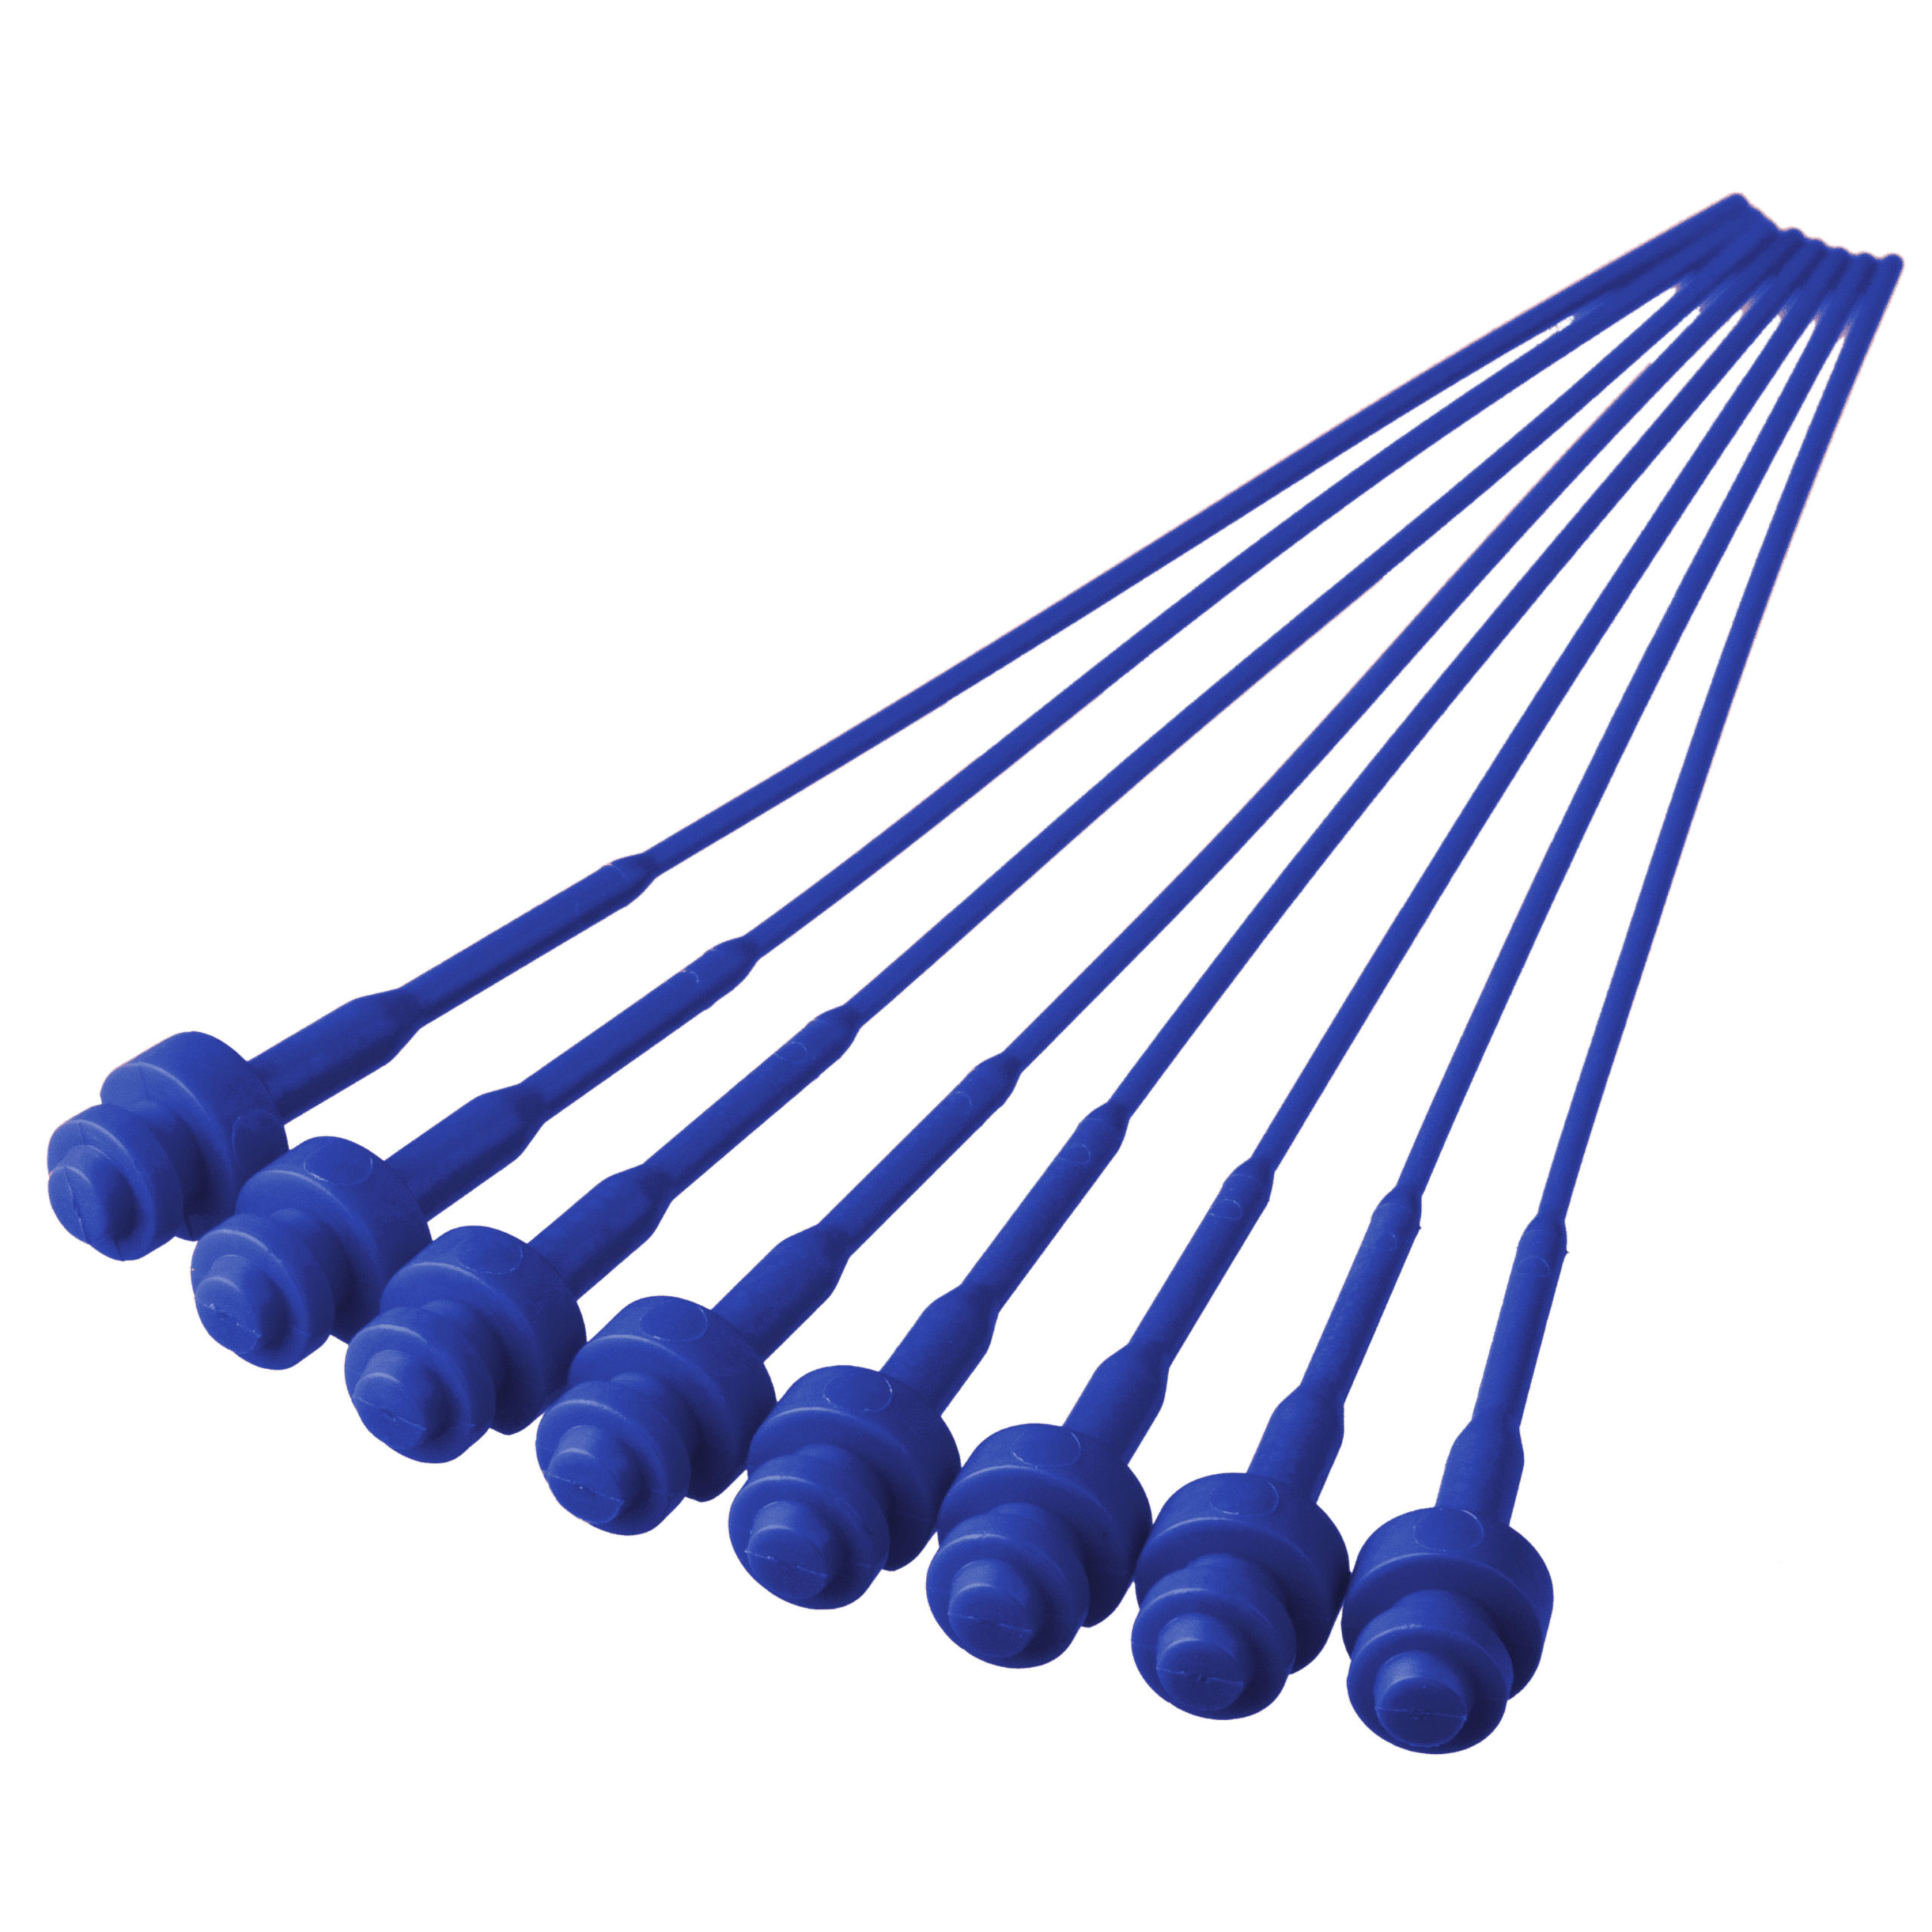 MAP Refill – Plungers n°2 blue (pack of 16) - 20202